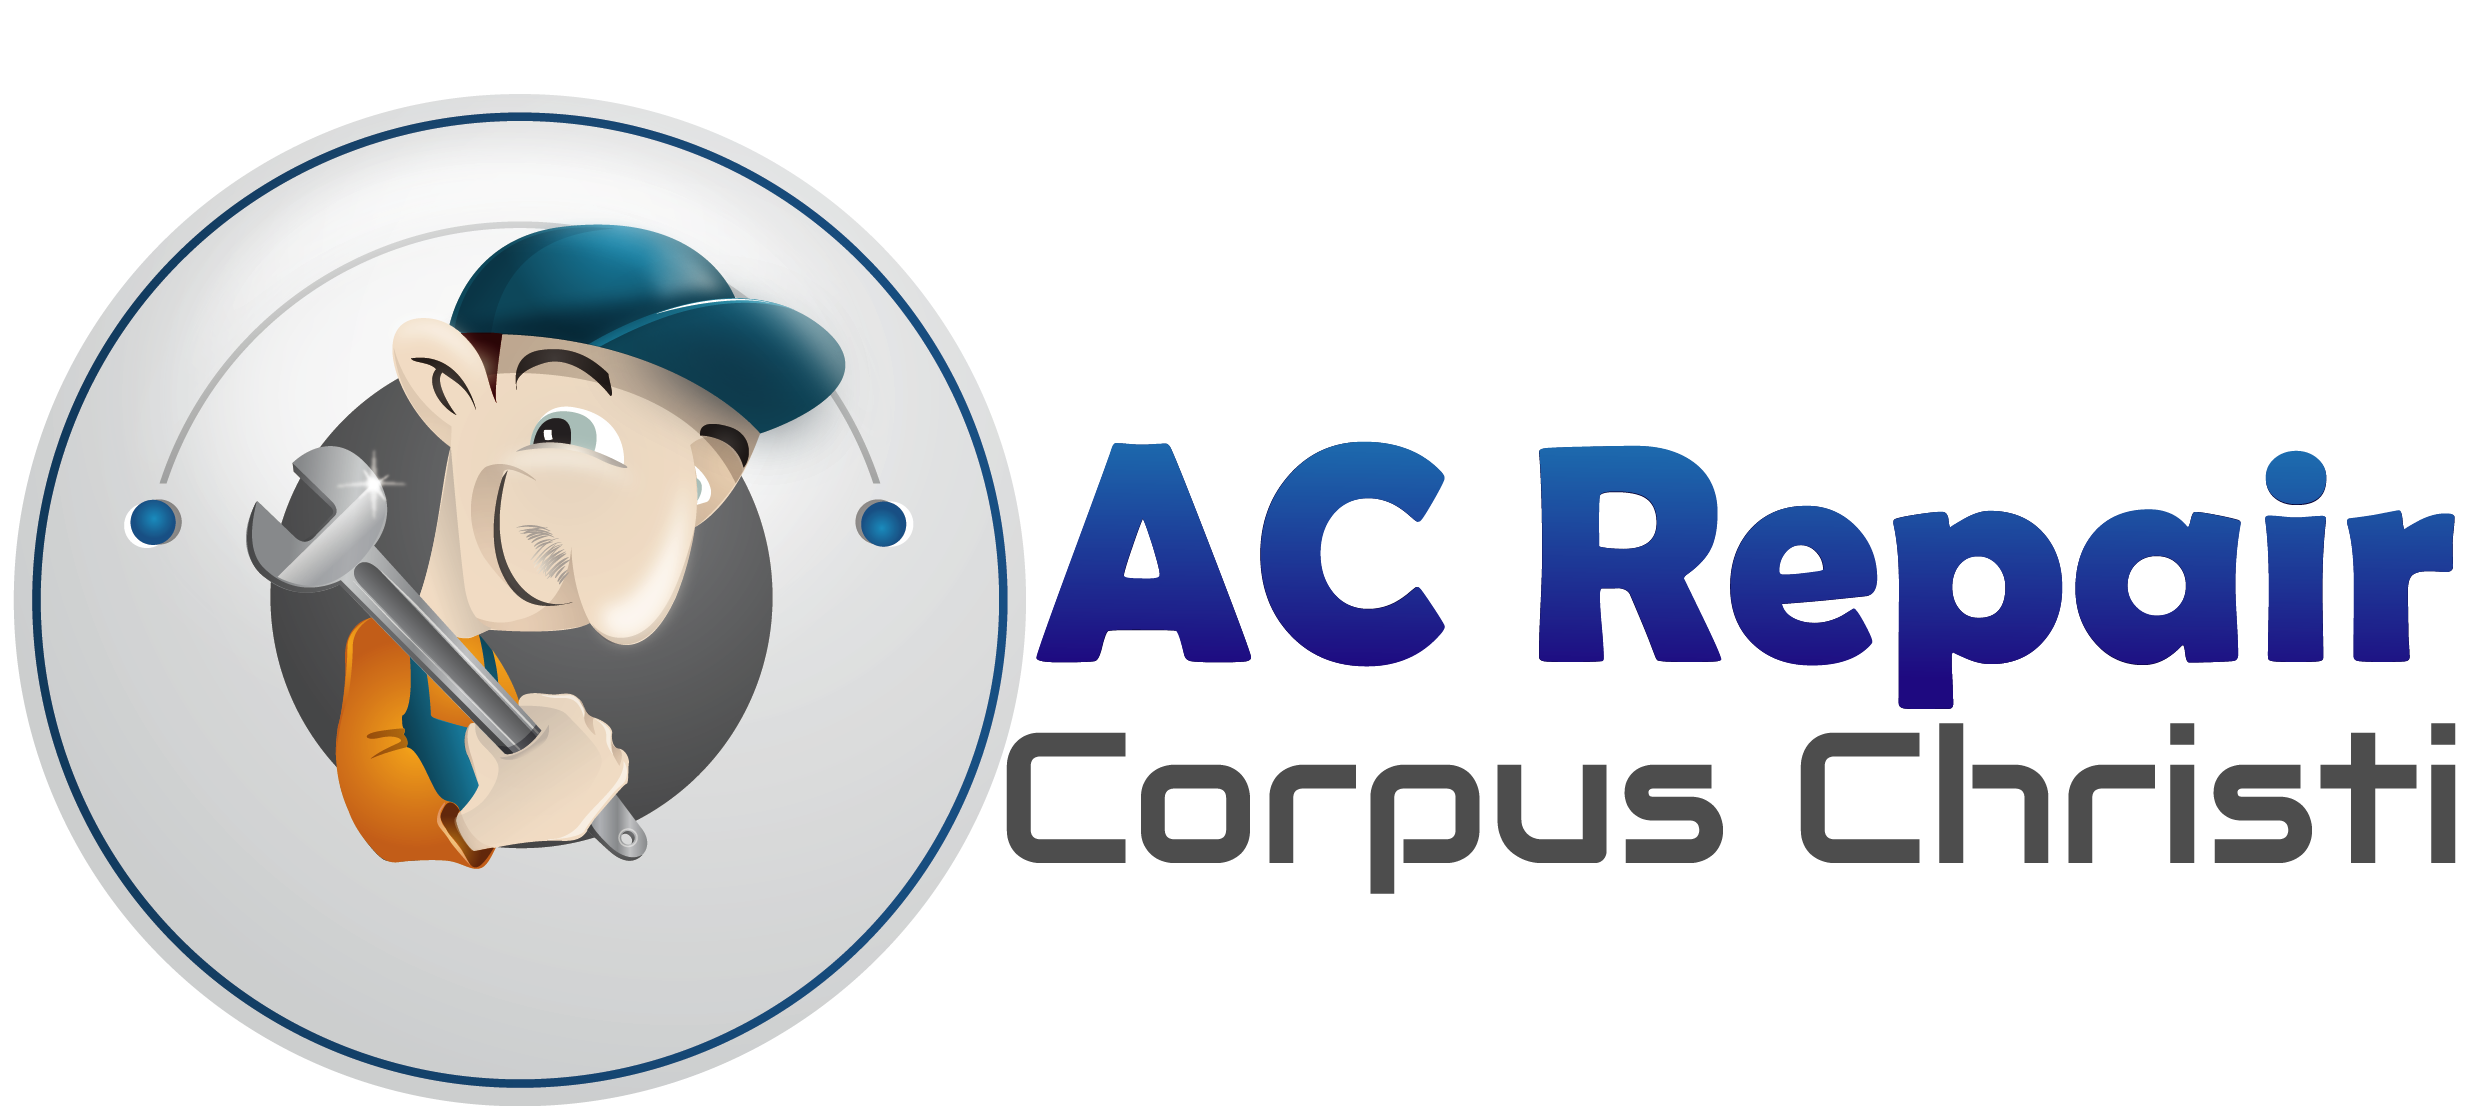 House ac unit clipart jpg library library AC Repair Corpus Christi - (361) 808-4100 - Air Conditioning ... jpg library library